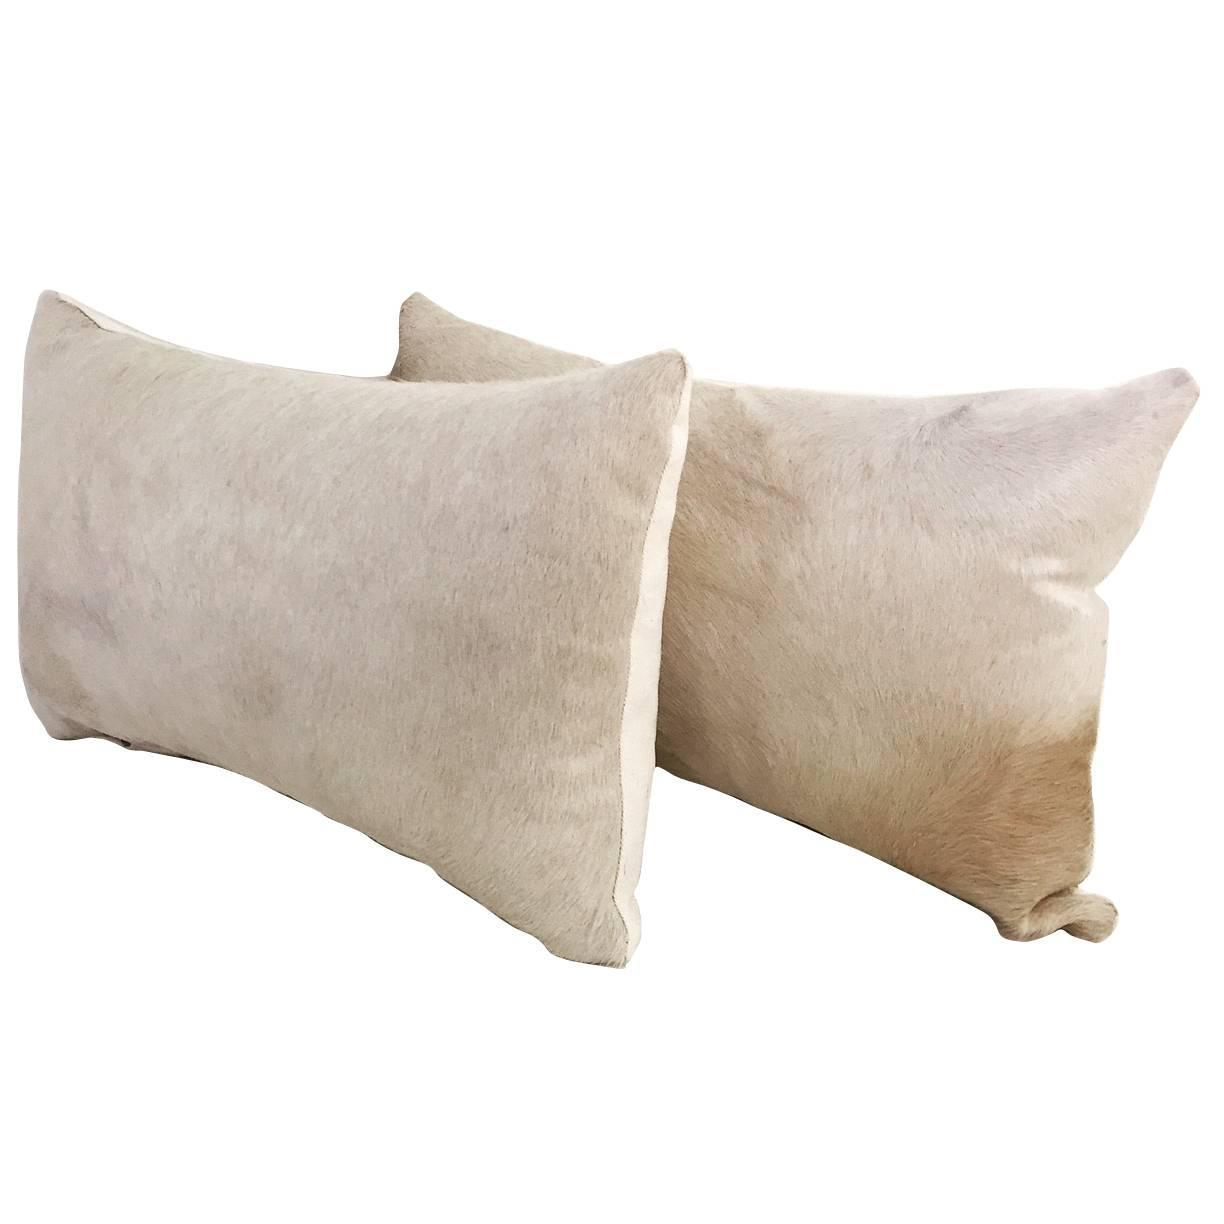 cowhide sofa throws faux leather 2 seater bed with center armrest pair rare ivory pillows at 1stdibs